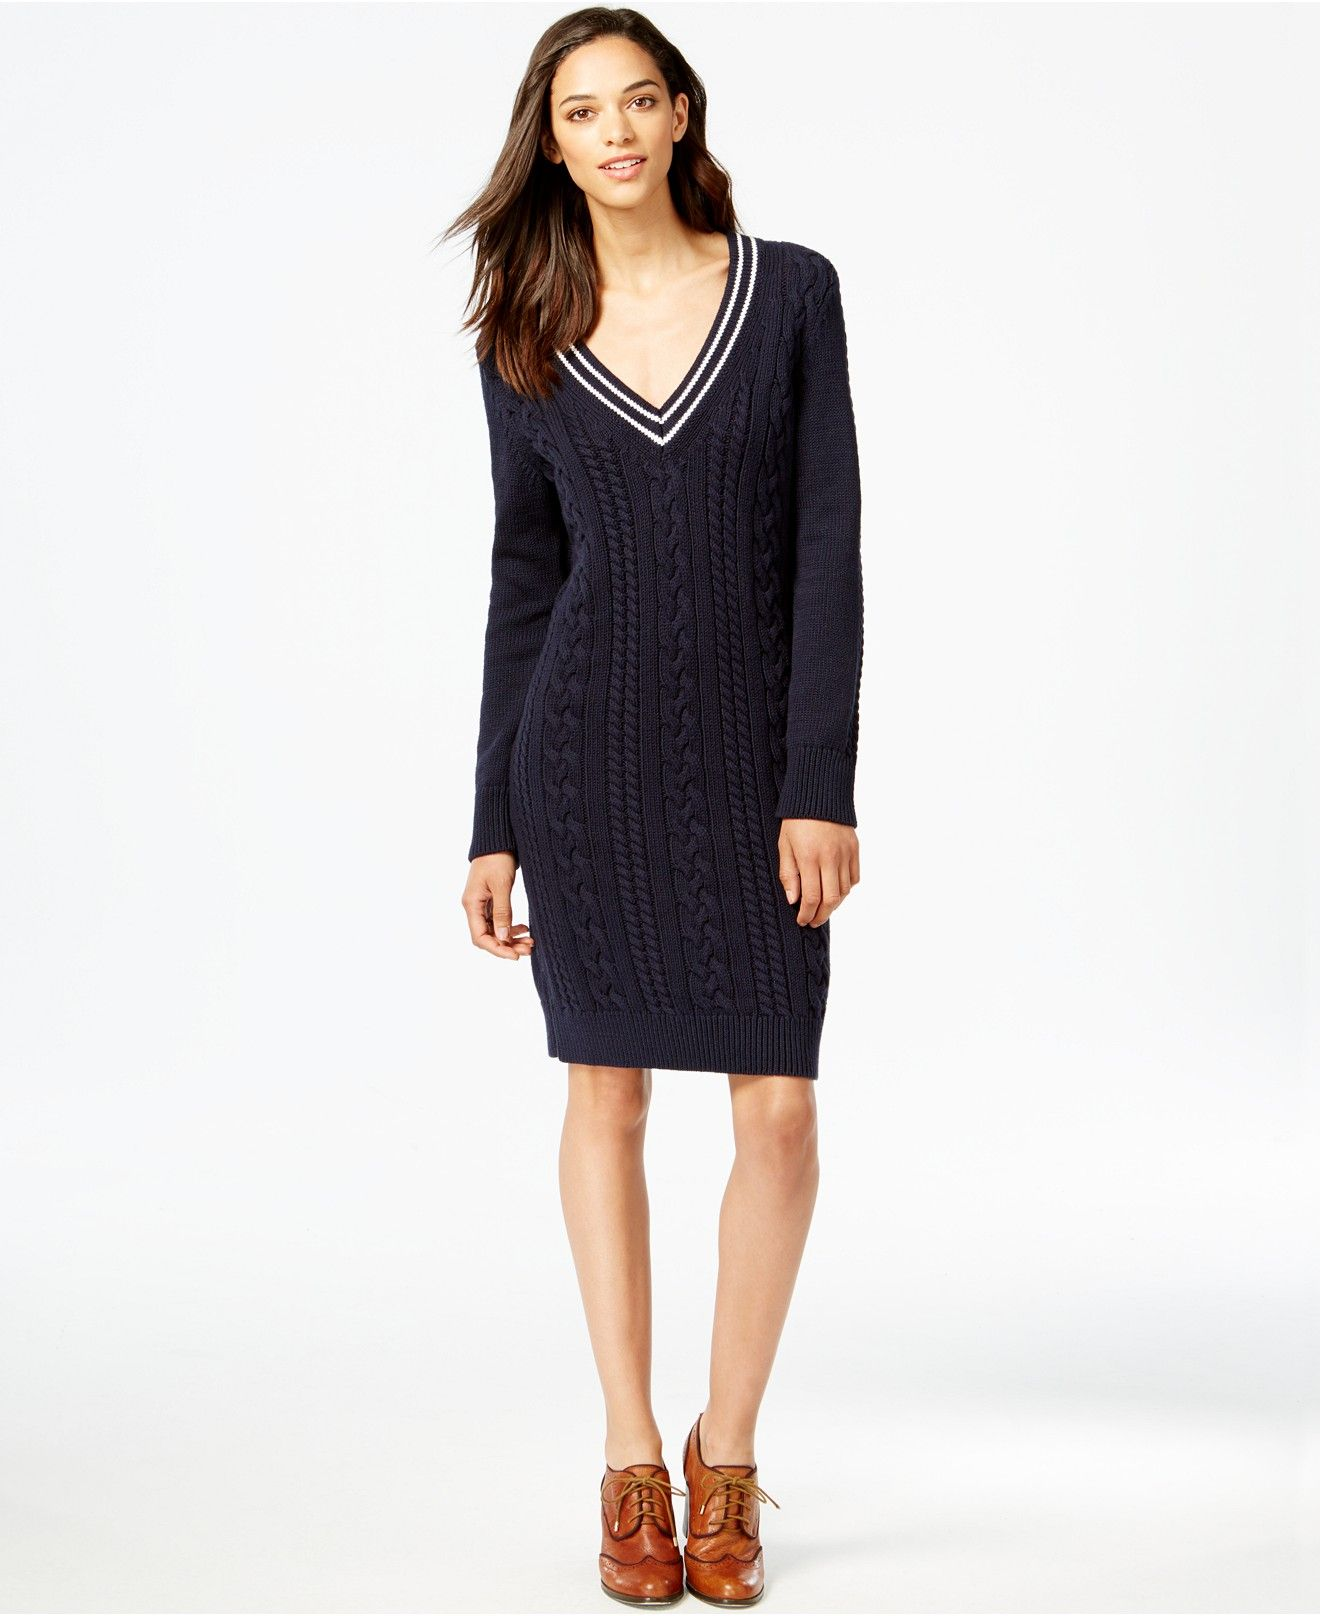 Tommy Hilfiger Blue Patchwork Cotton Knit Sweater Dress